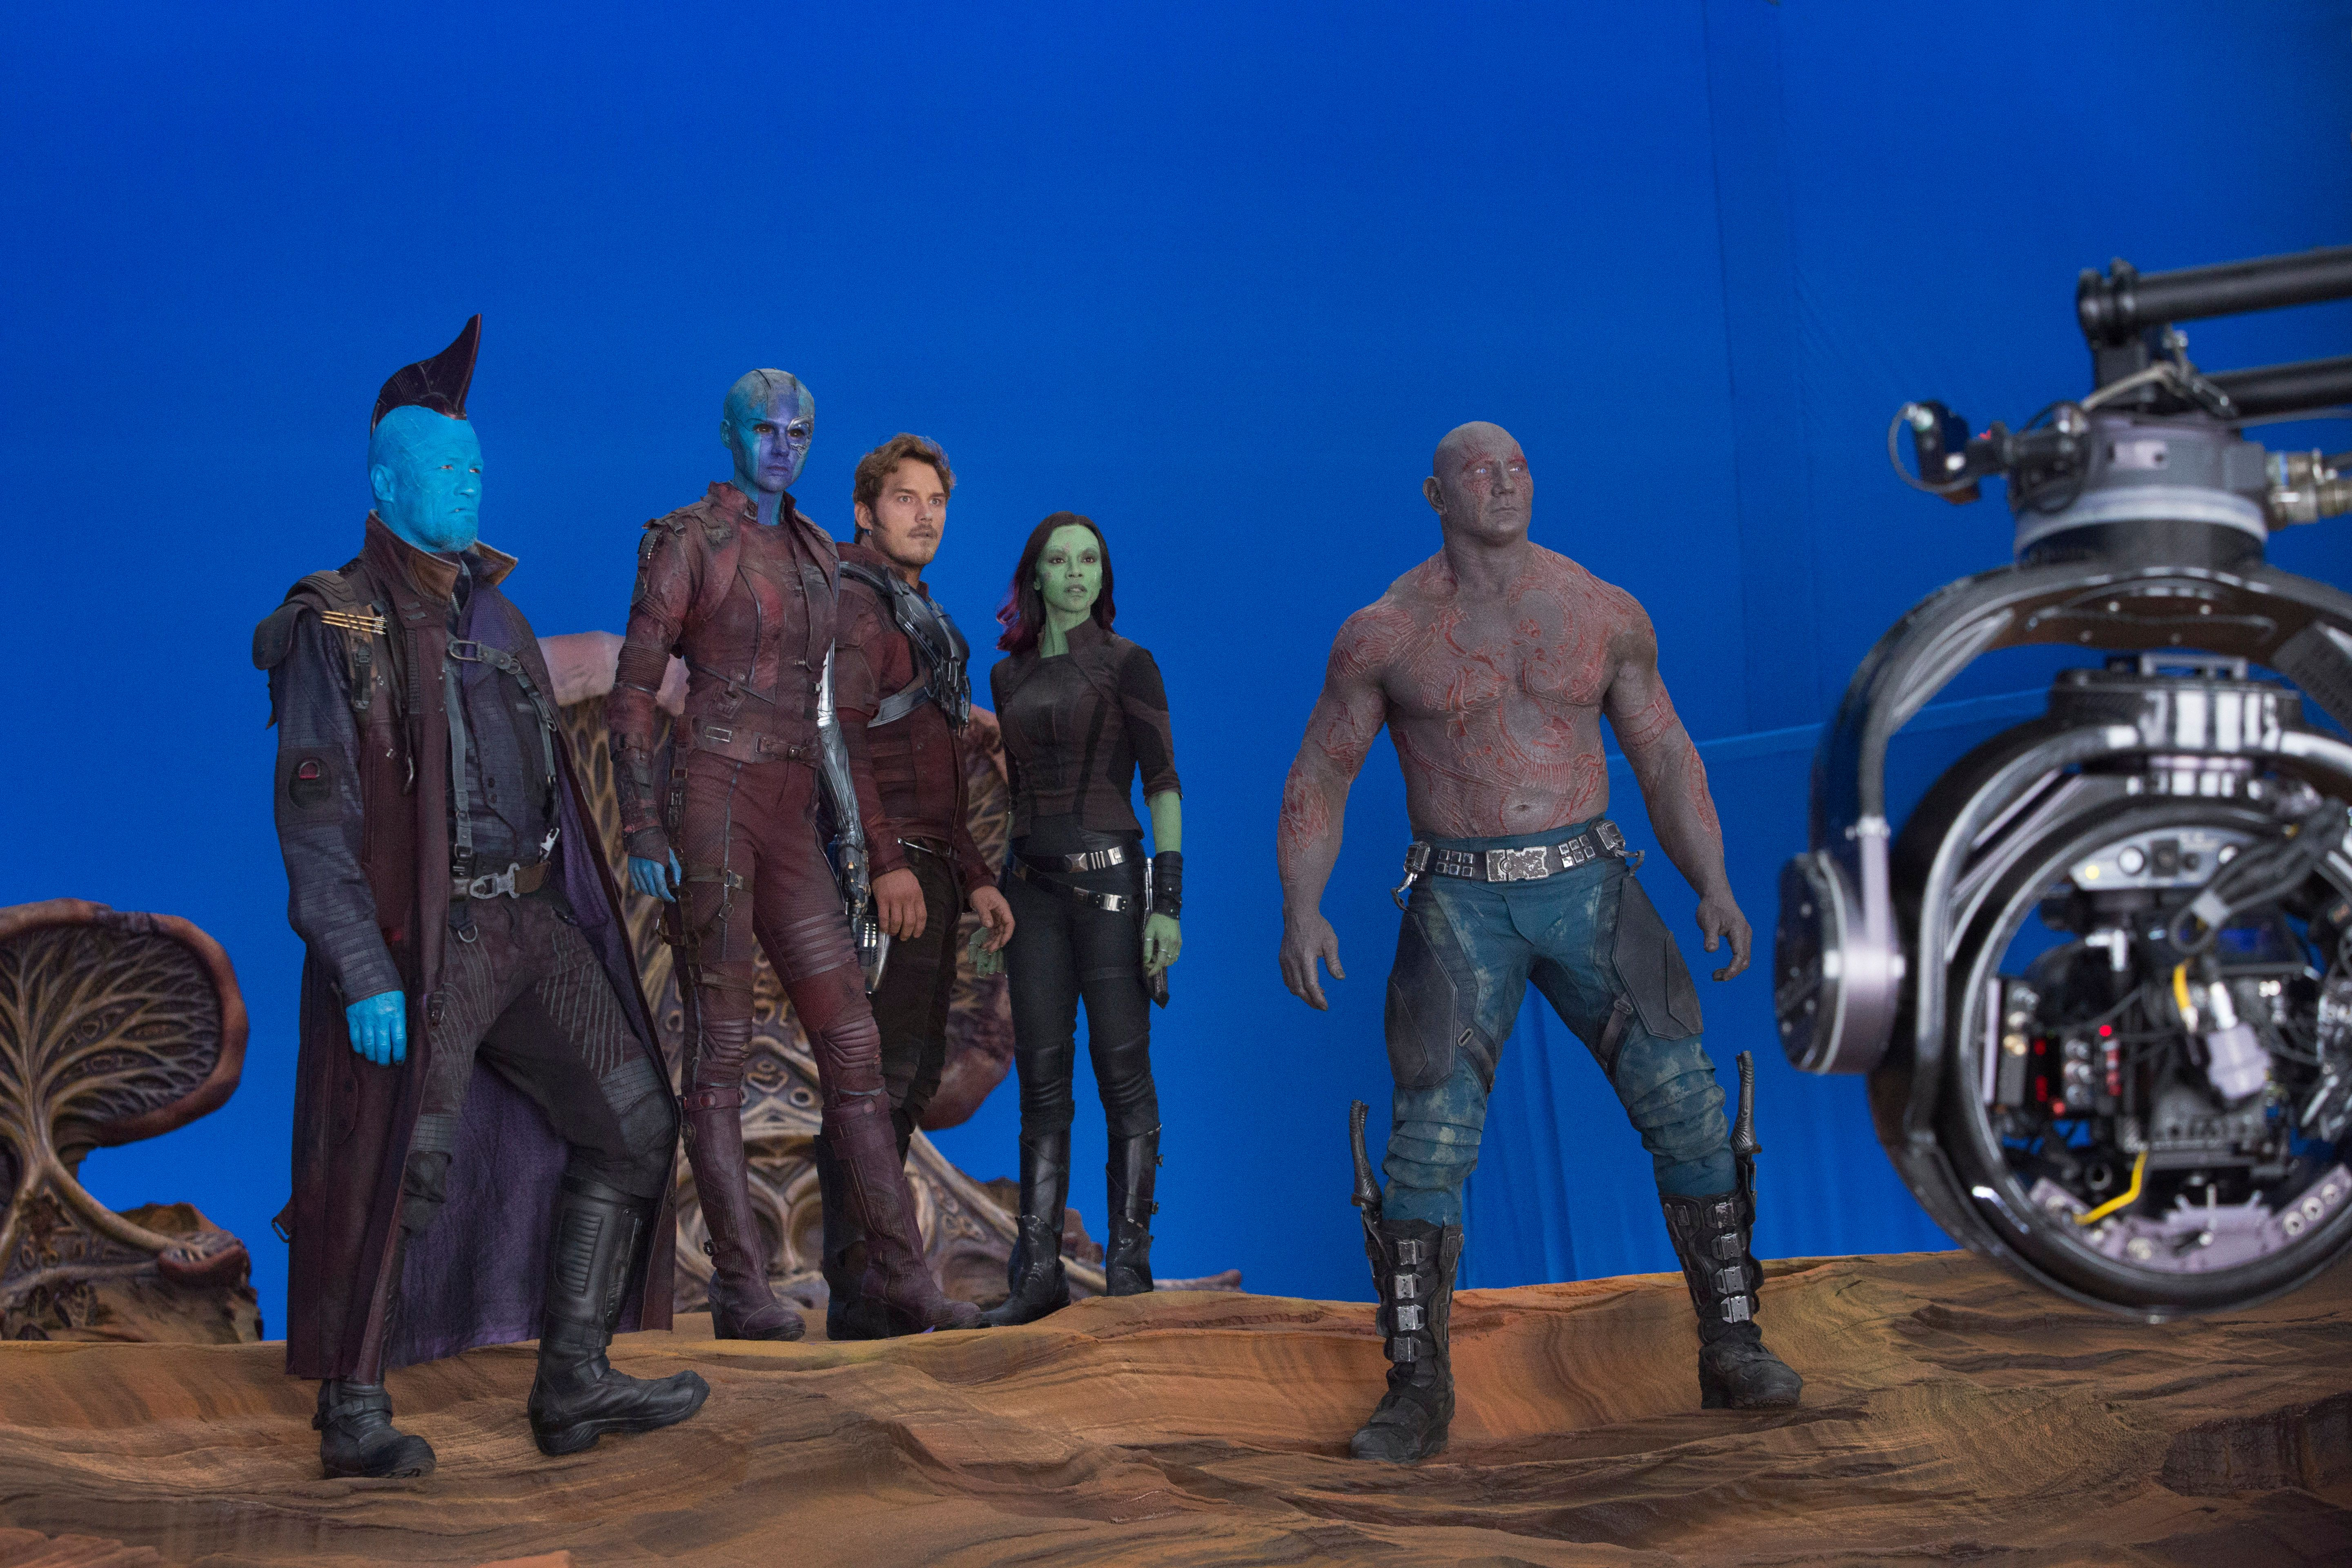 'Guardians of the Galaxy Vol. 2': Kevin Feige on How the Movie Fits into the Greater MCU